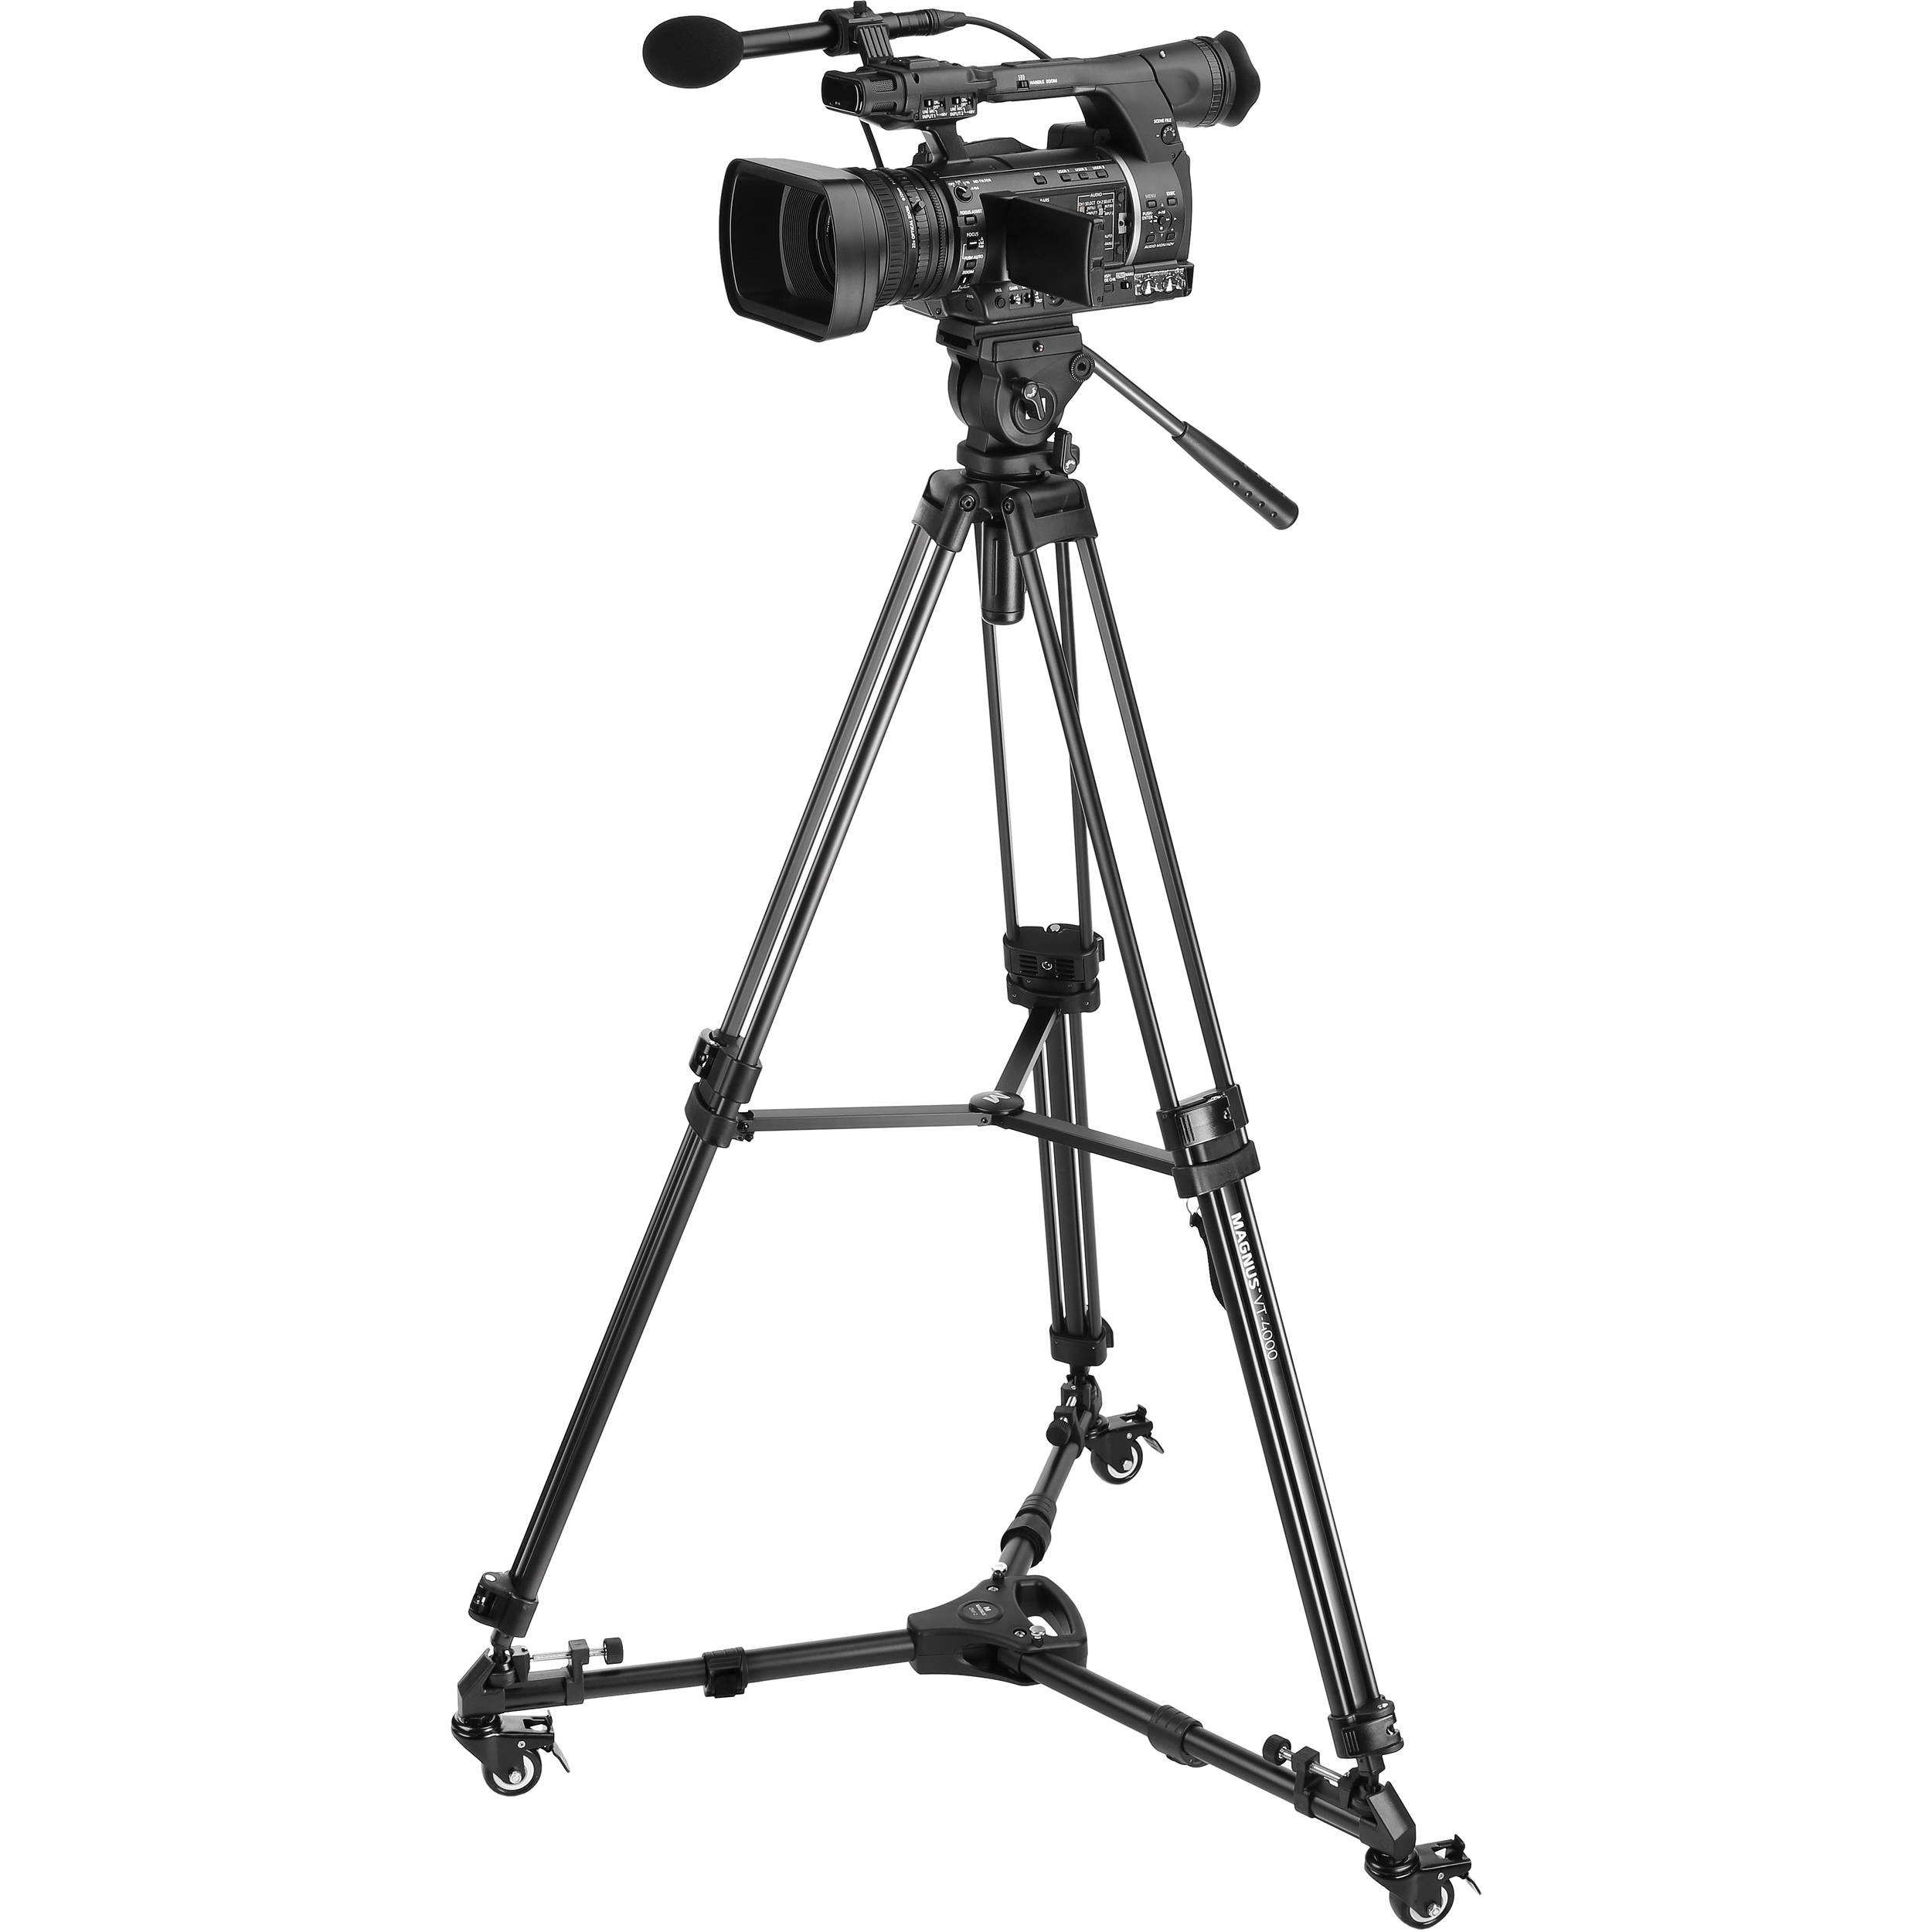 Magnus VT-4000 Tripod System Kit with Fluid Video Head, Dolly, and Pan Bar